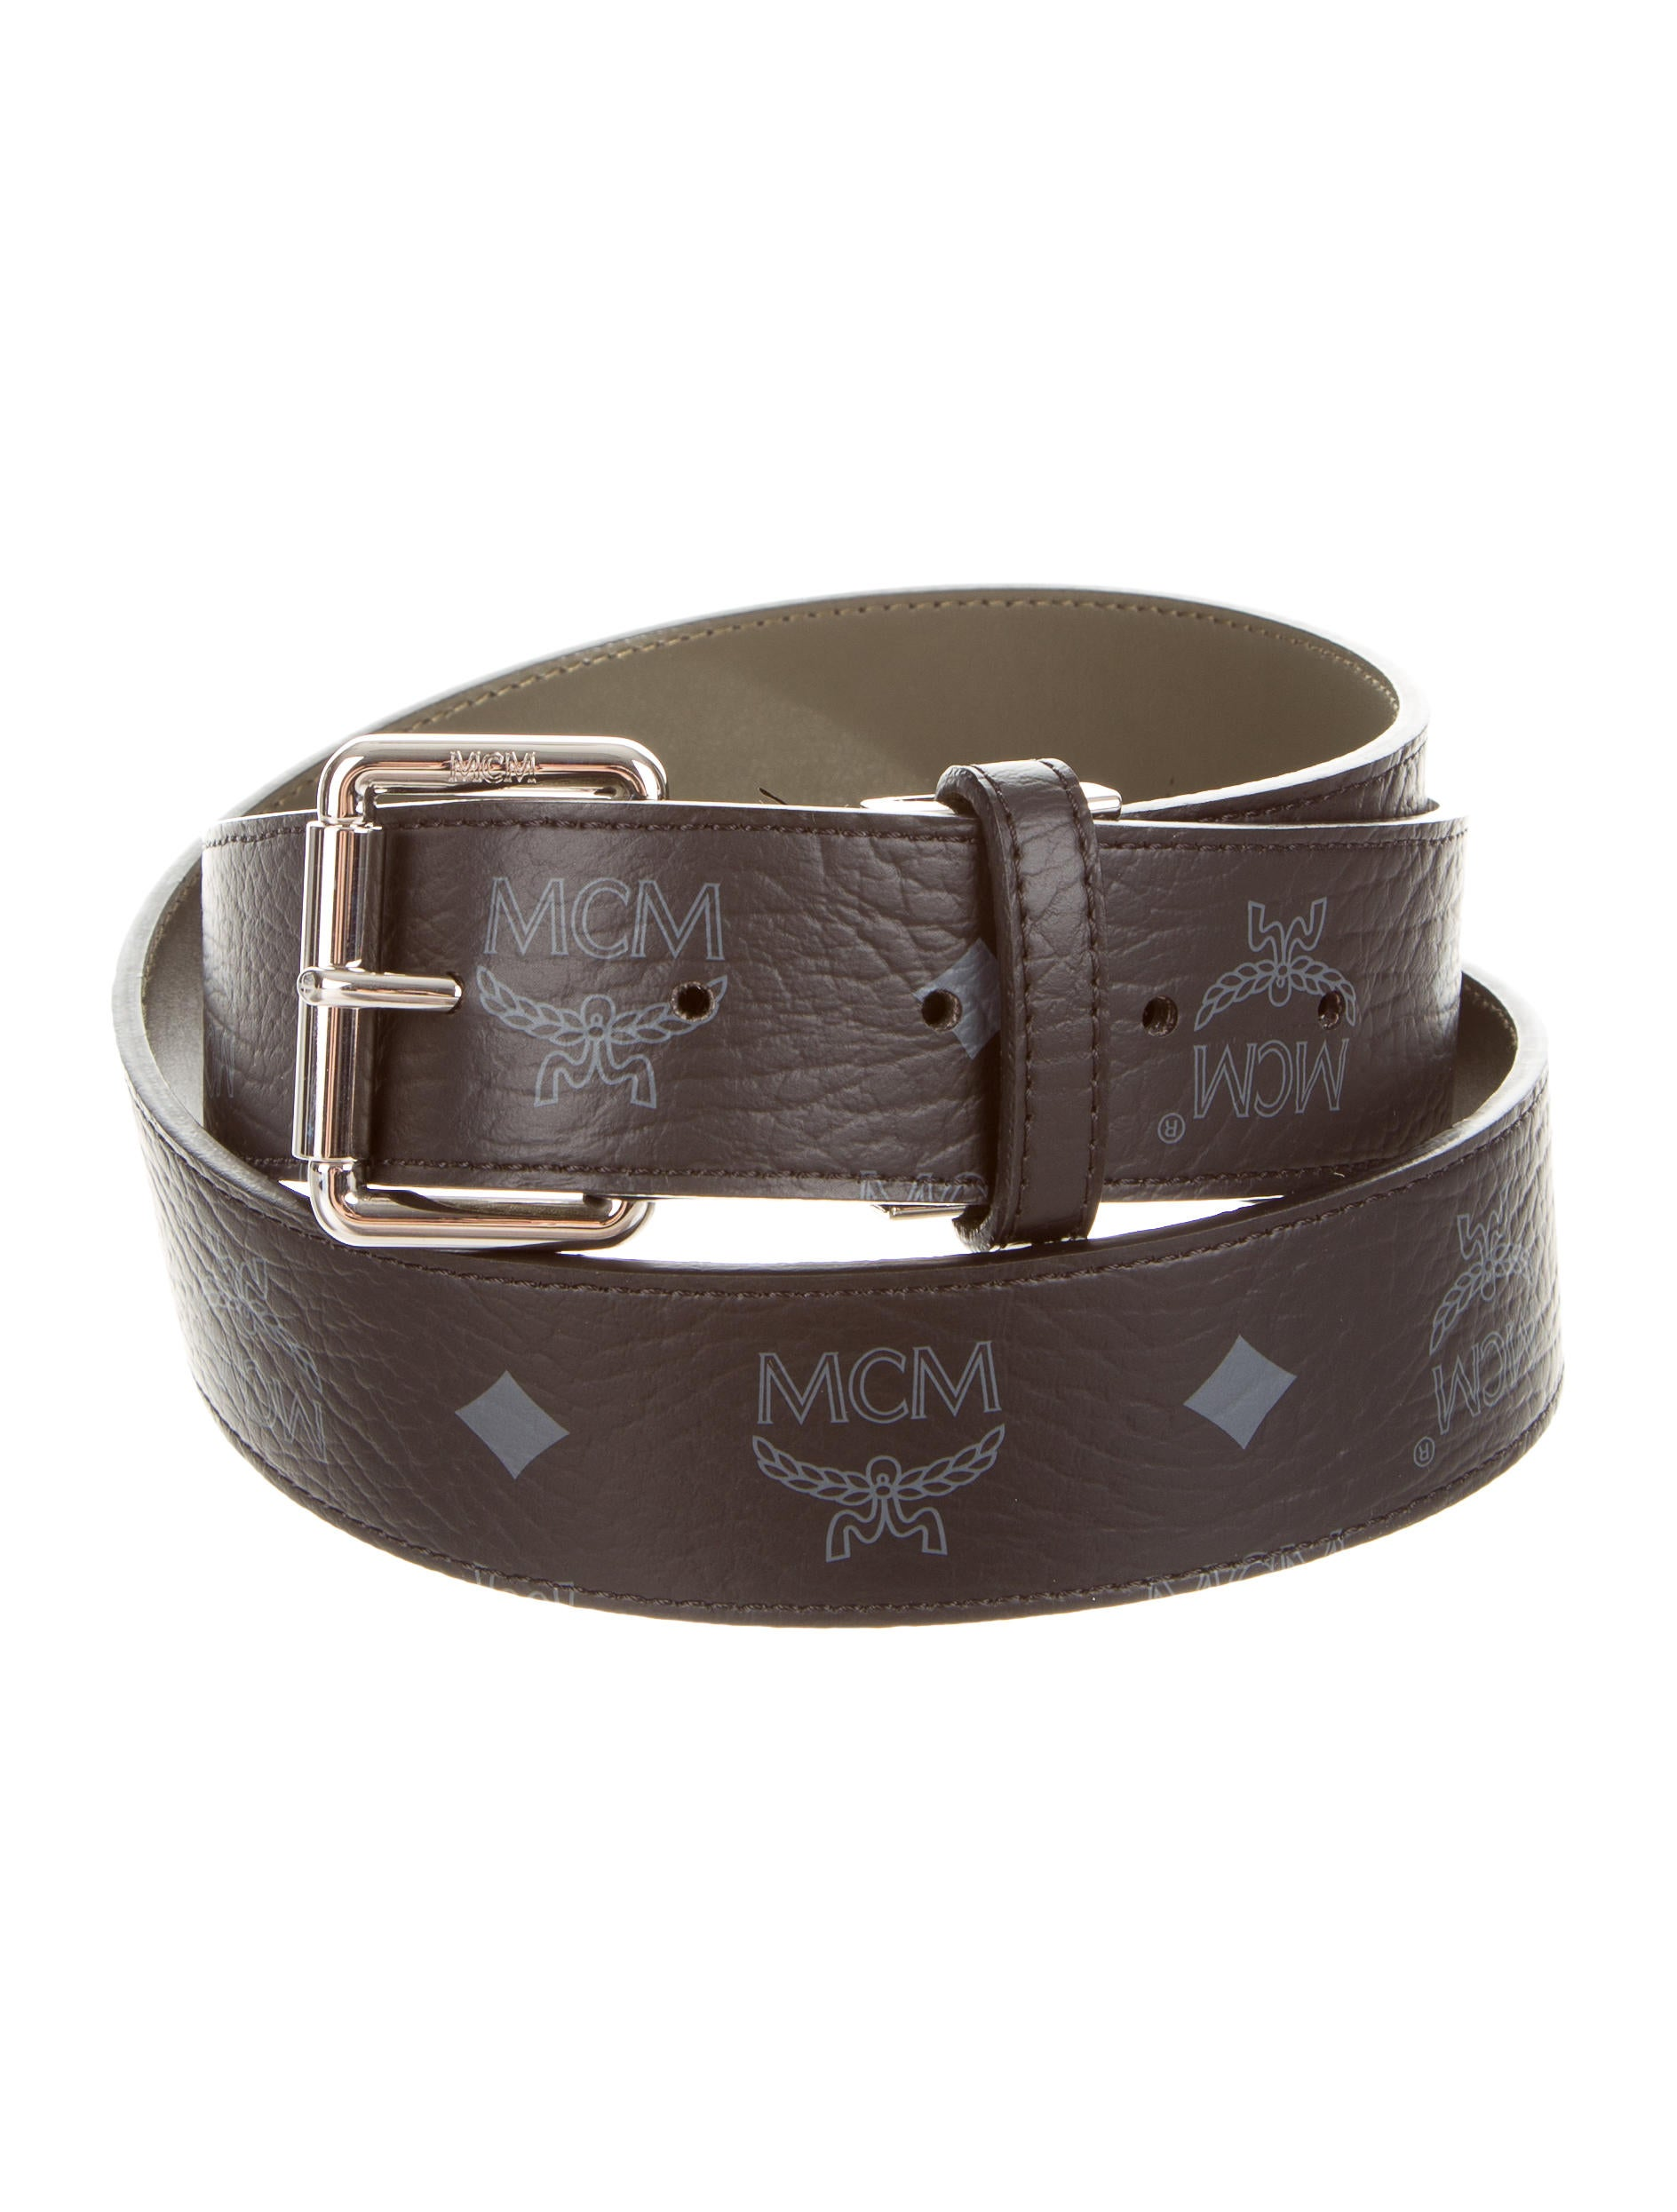 mcm leather logo belt accessories w3020264 the realreal